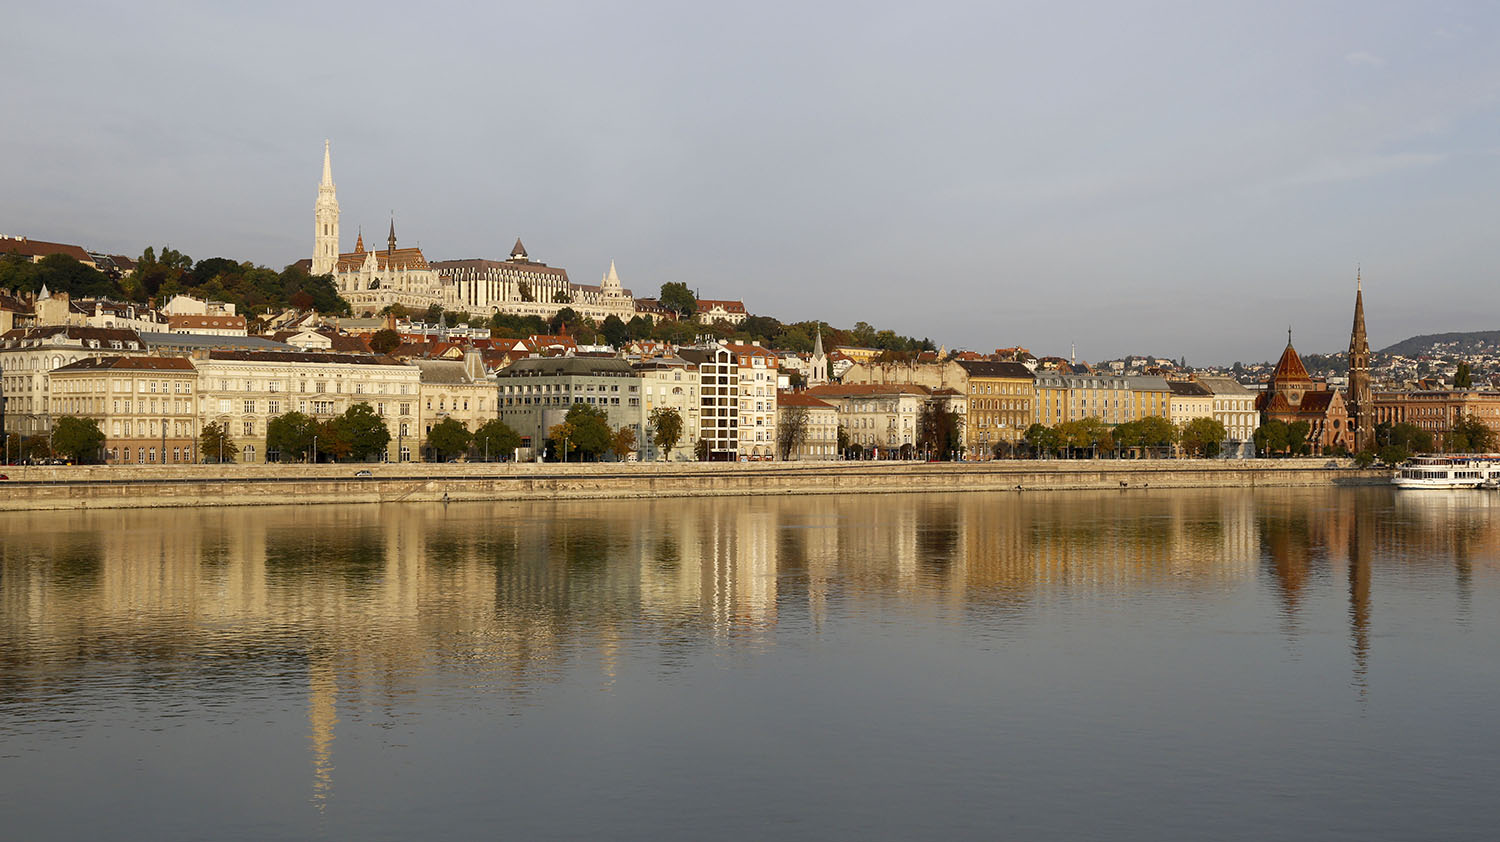 Buda by Day